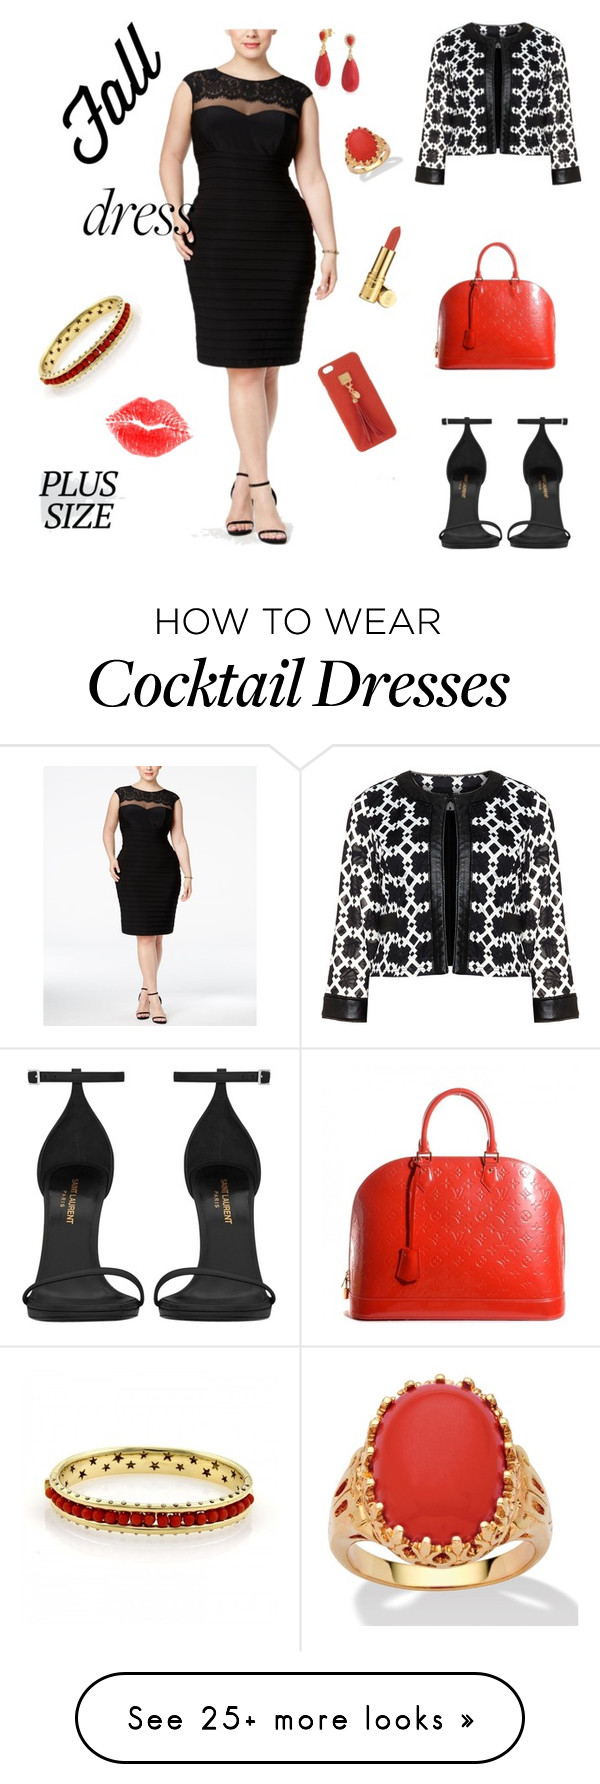 """Fall Dress Plus"" by shaejay on Polyvore featuring XSCAPE, Tia, Yves Saint Laurent, Louis Vuitton, Palm Beach Jewelry, Henri Bendel, Bling Jewelry, H.Stern, NYX and Elizabeth Arden"